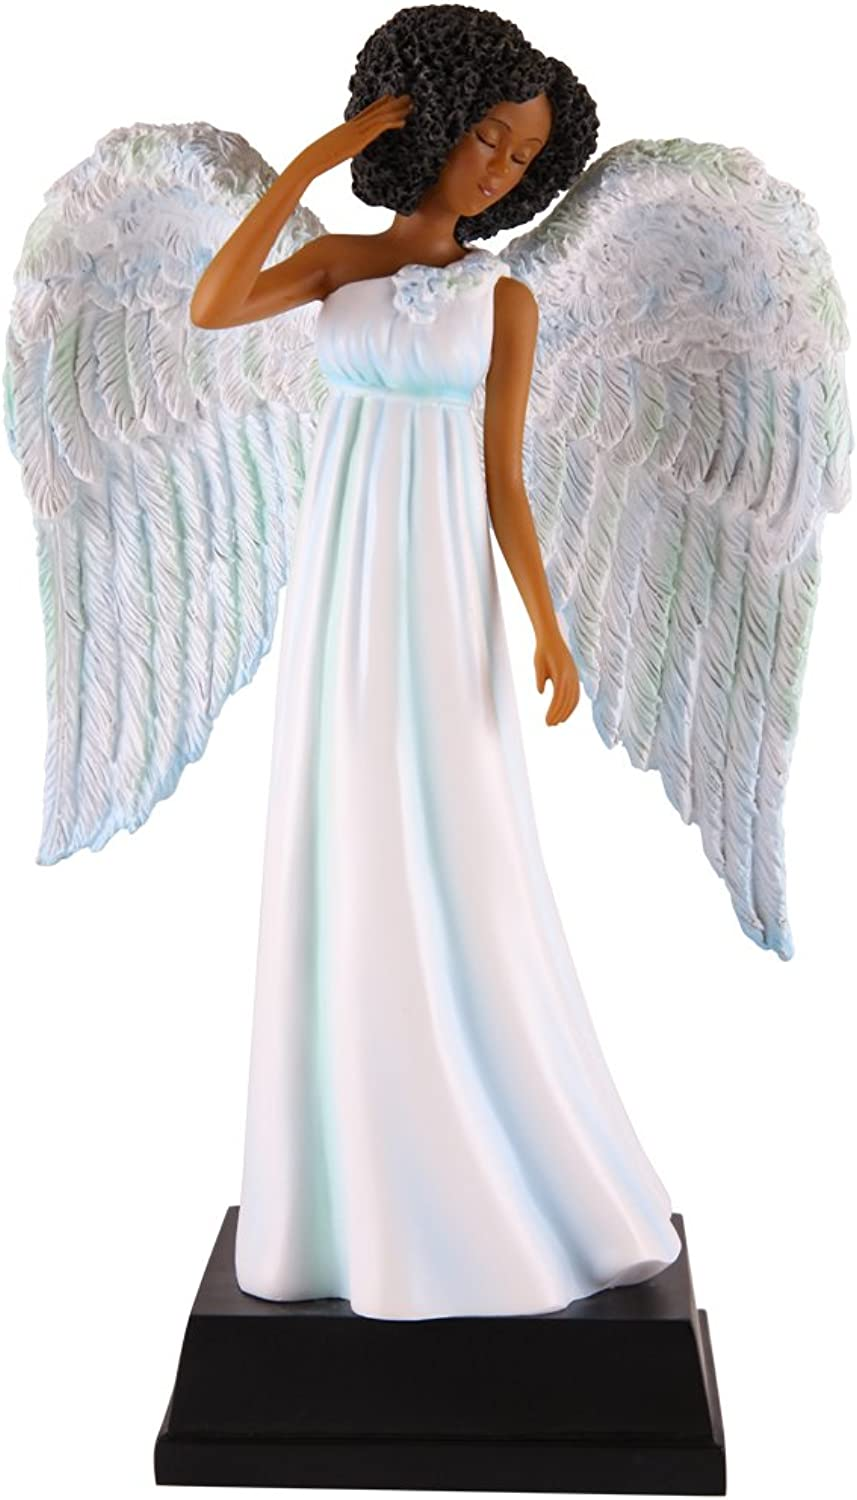 African American Expressions - Light bluee Angel Polyresin Figurine (5.5  x 2.75  x 8.75 ) FAN05Brand change to African American Expressions